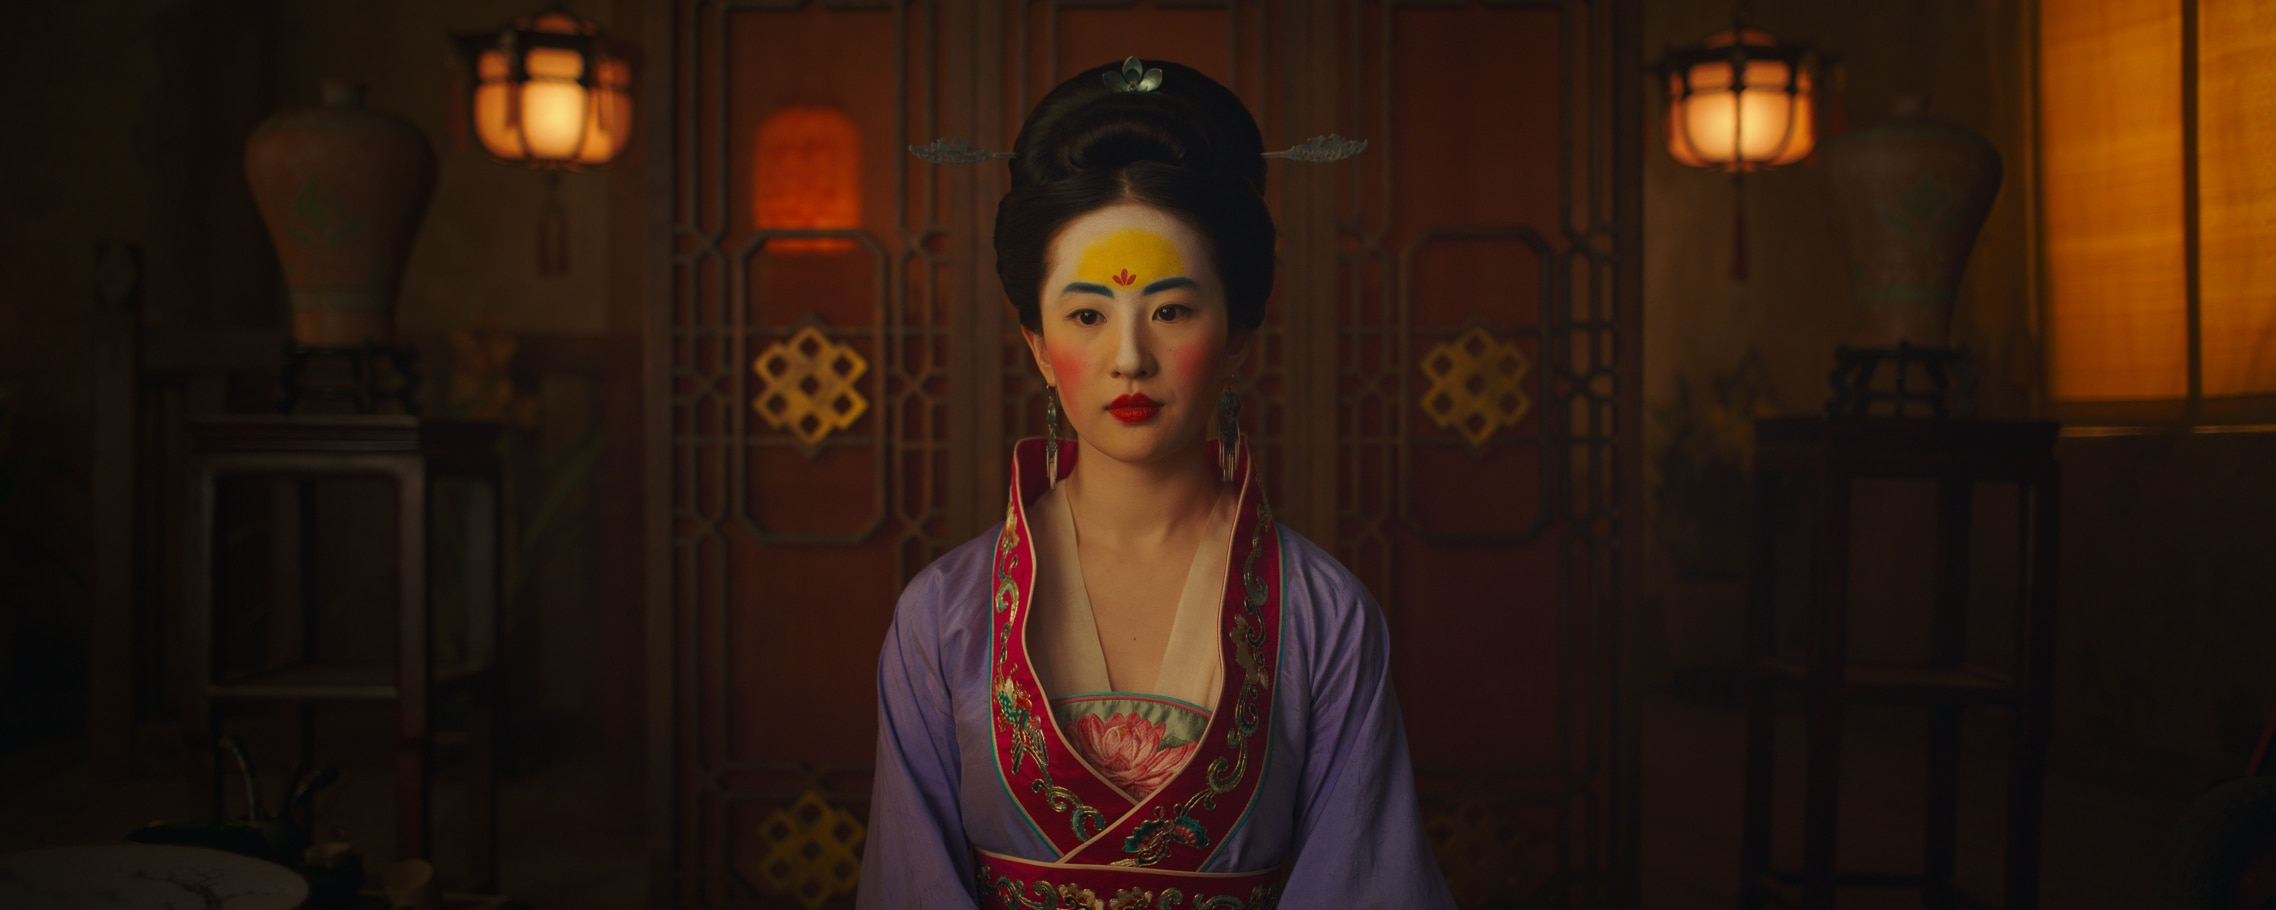 Mulan, now streaming on Disney+, with Premier Access